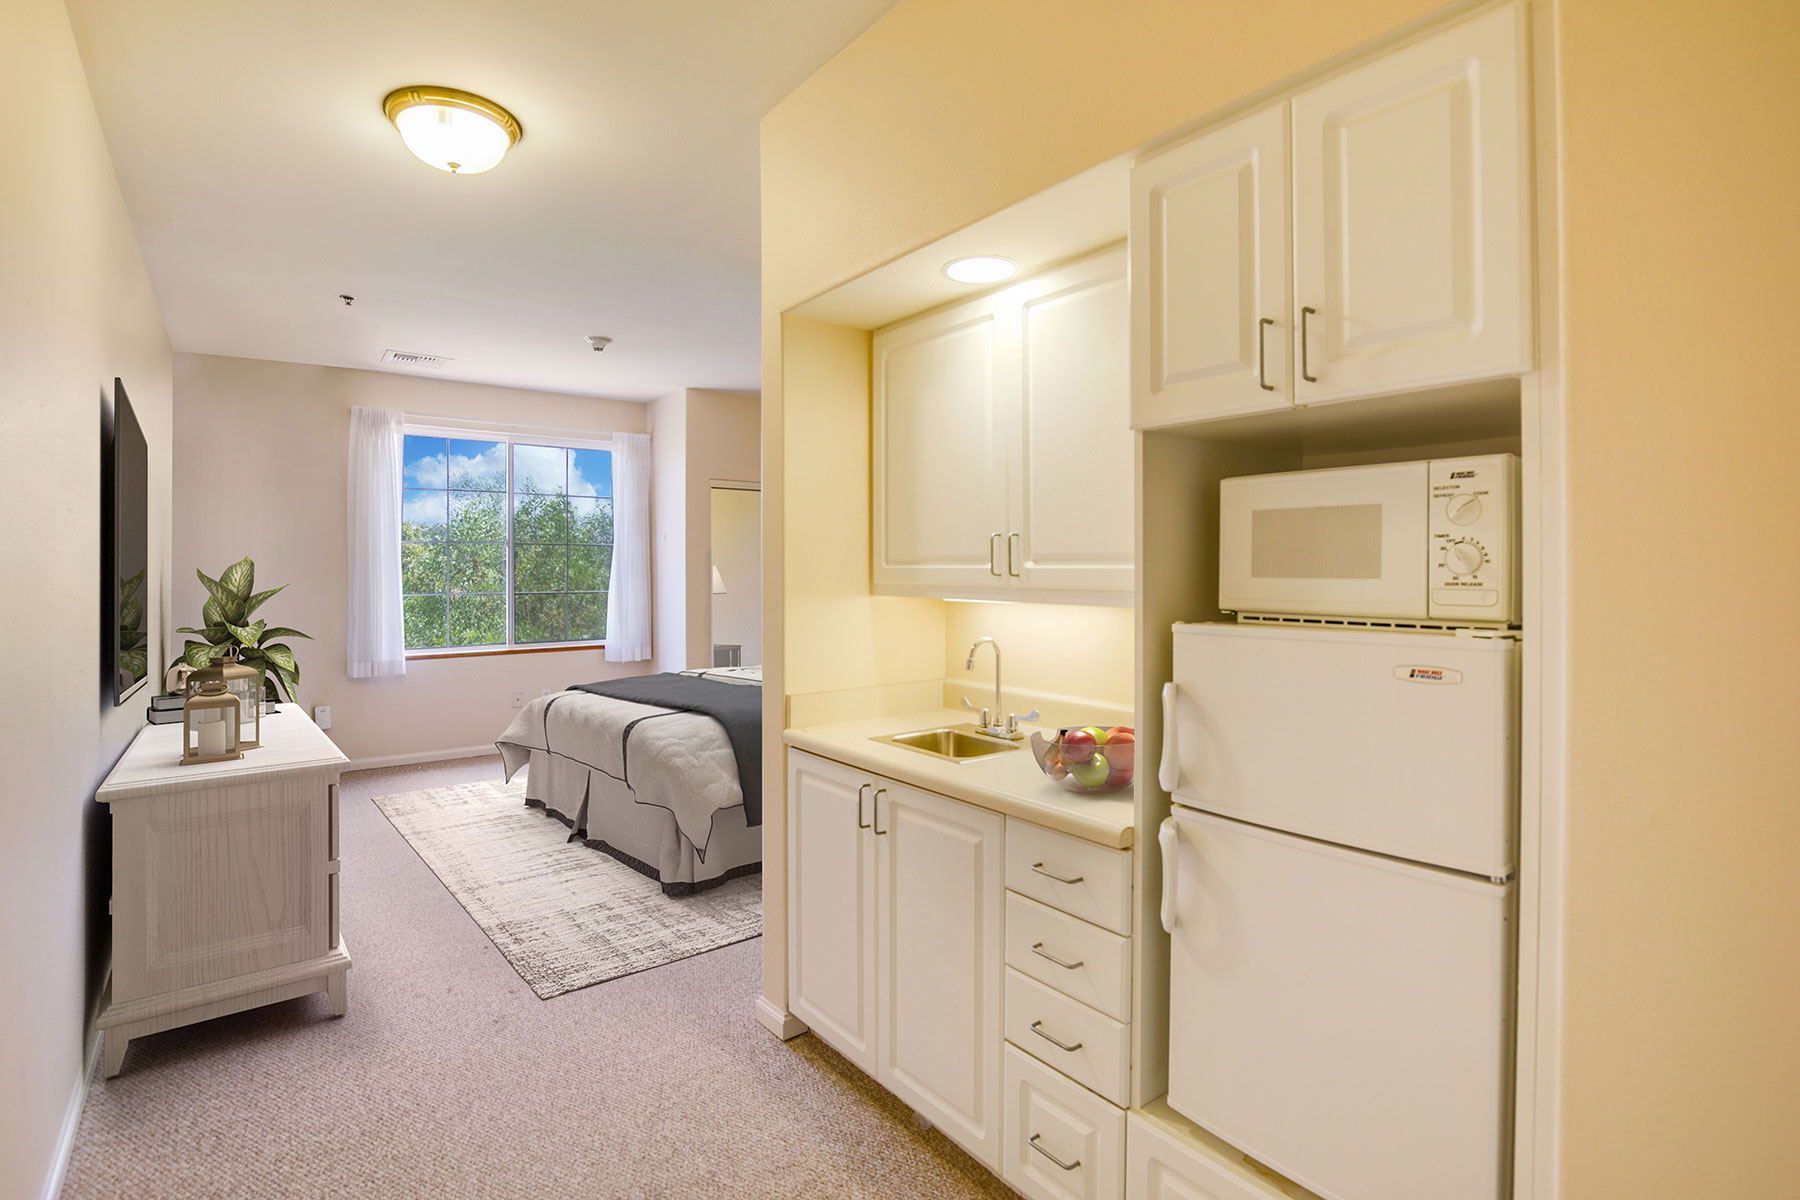 Assisted Living bedroom and kitchenette.